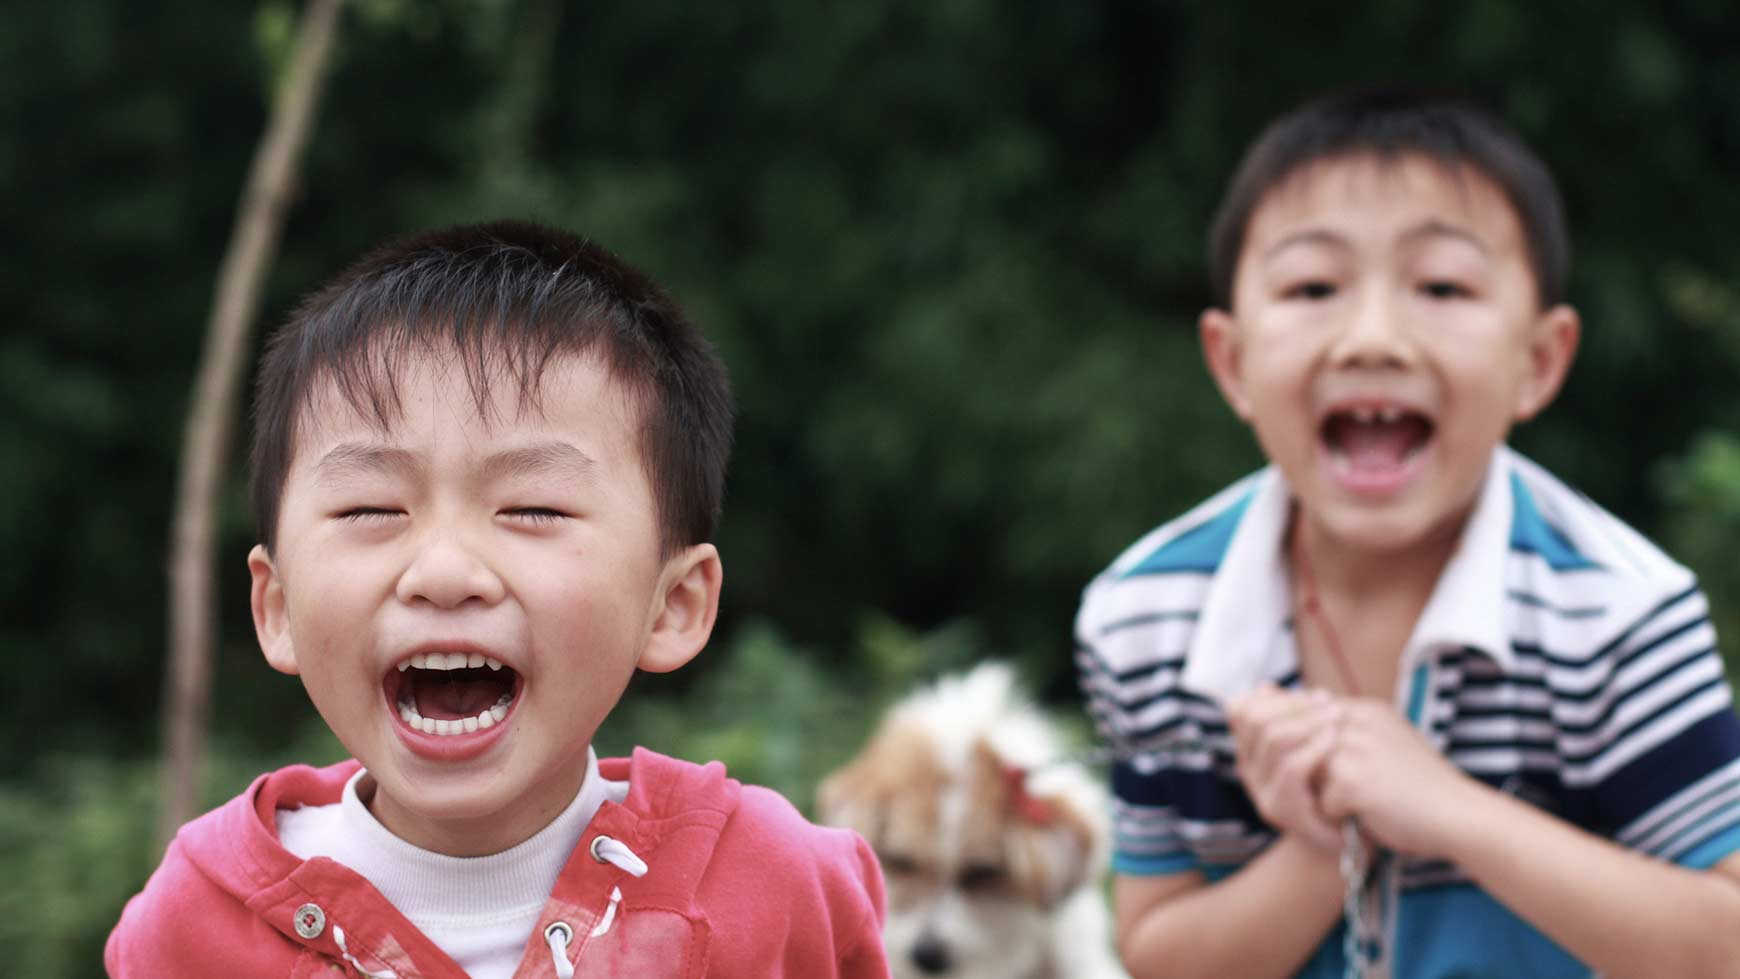 over excited silly kids.jpg